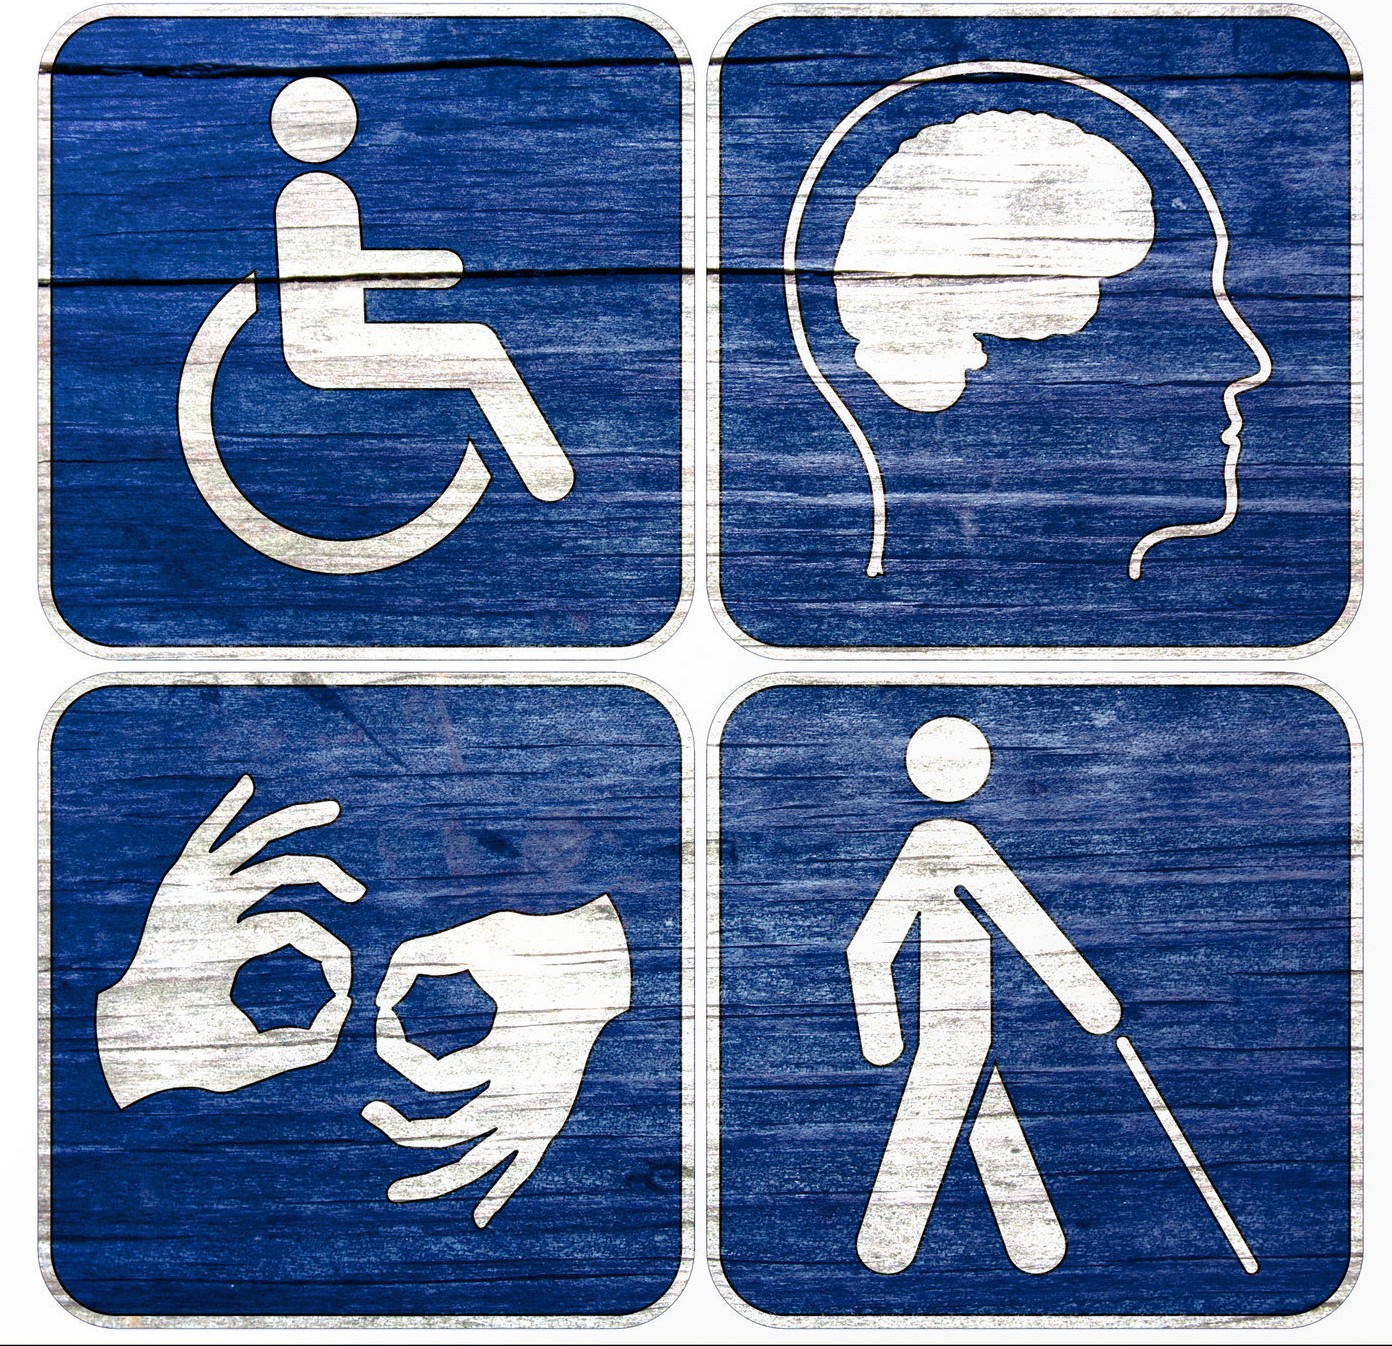 ada-american-with-disabilities-act-faq-02